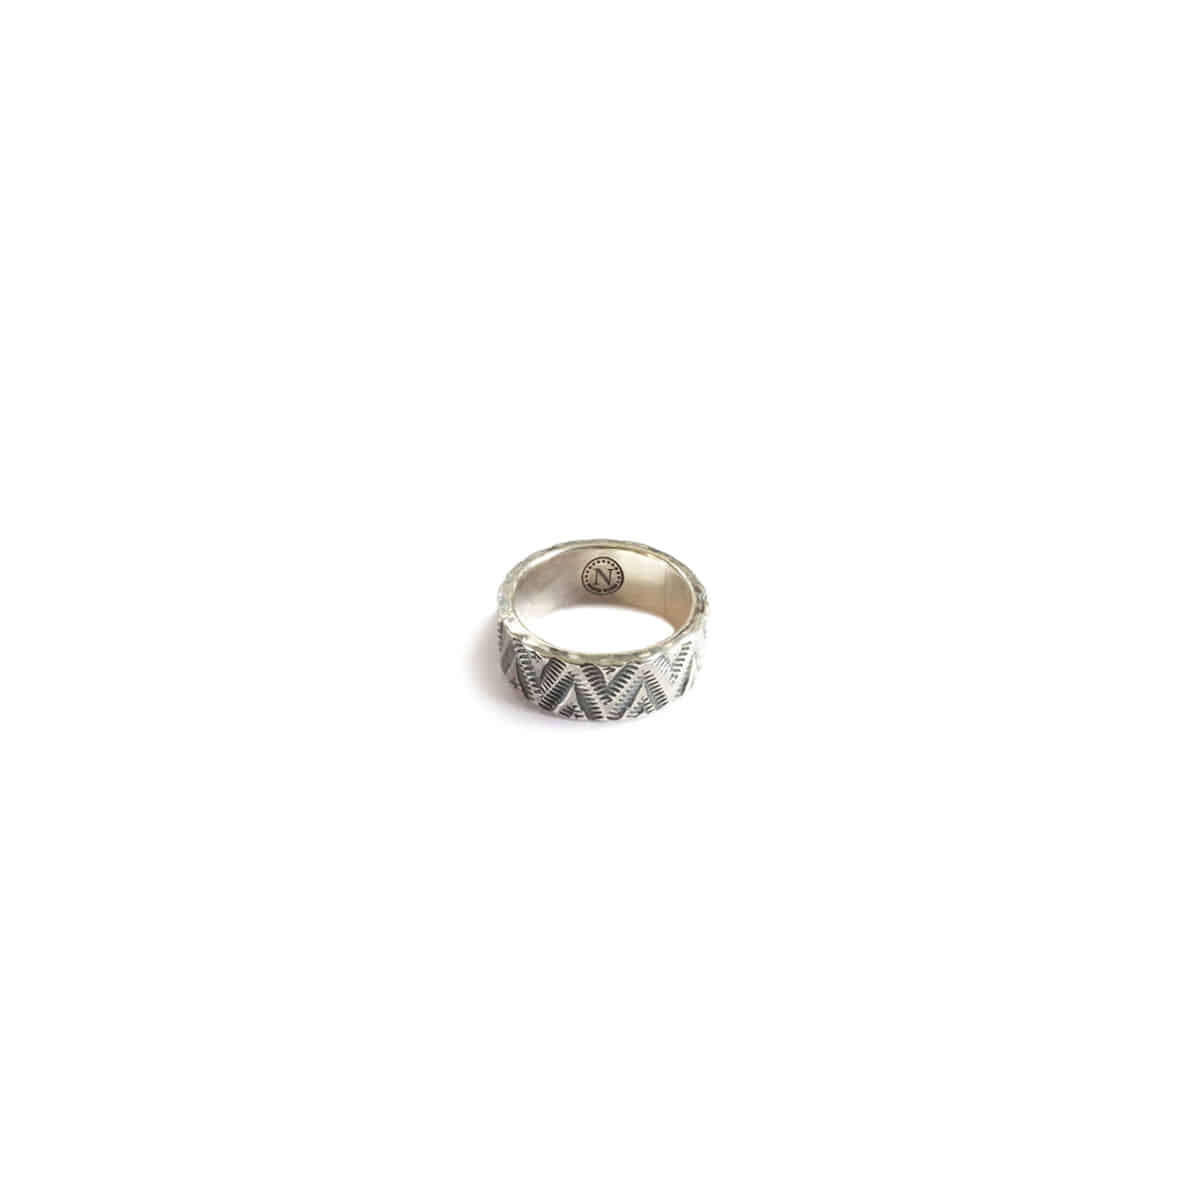 [NORTH WORKS] 900 SILVER TRIANGLE WAVE RING 'W-050'